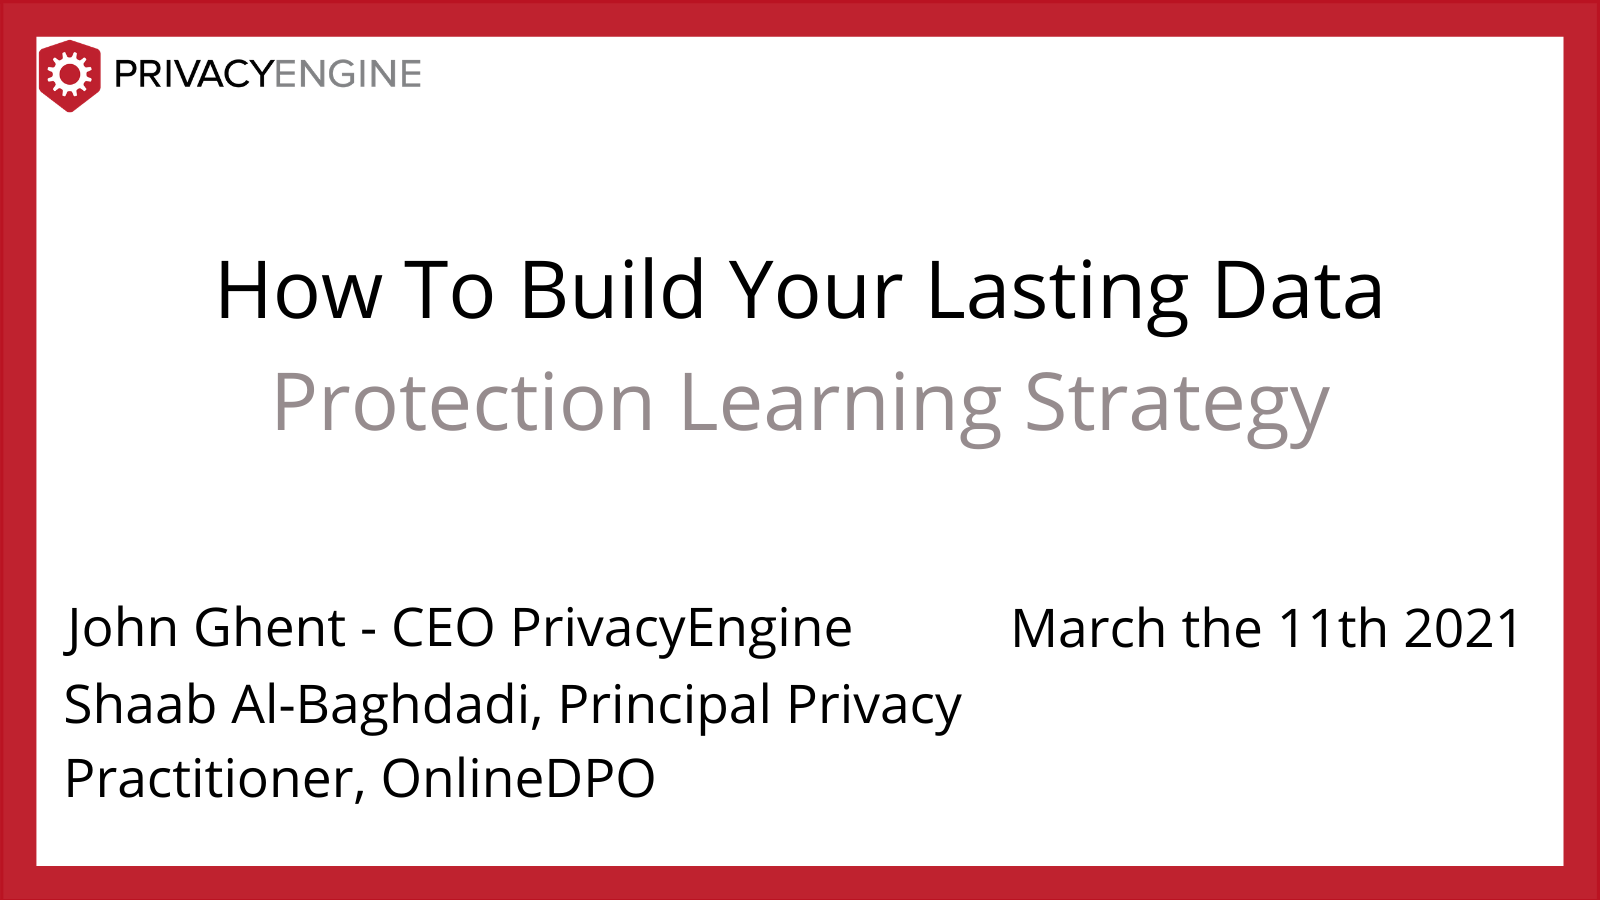 Data Protection Learning